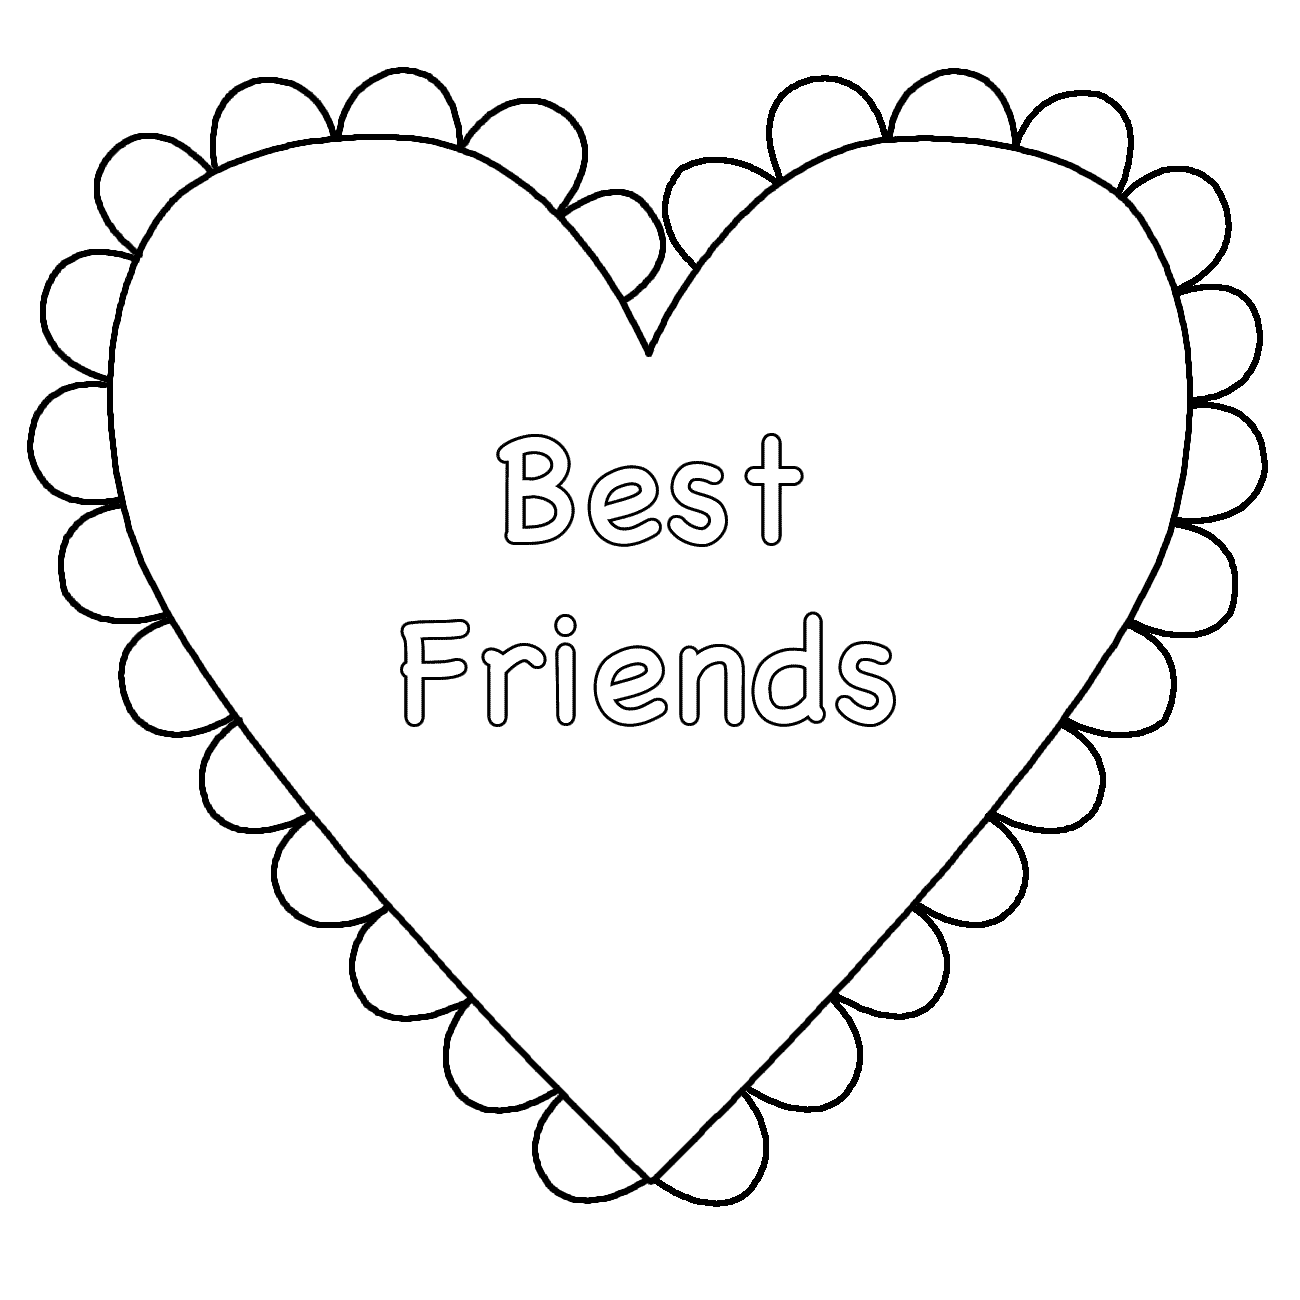 Heart Best Friends Coloring Page Valentine S Day Heart Coloring Pages Valentine Coloring Pages Free Printable Coloring Pages